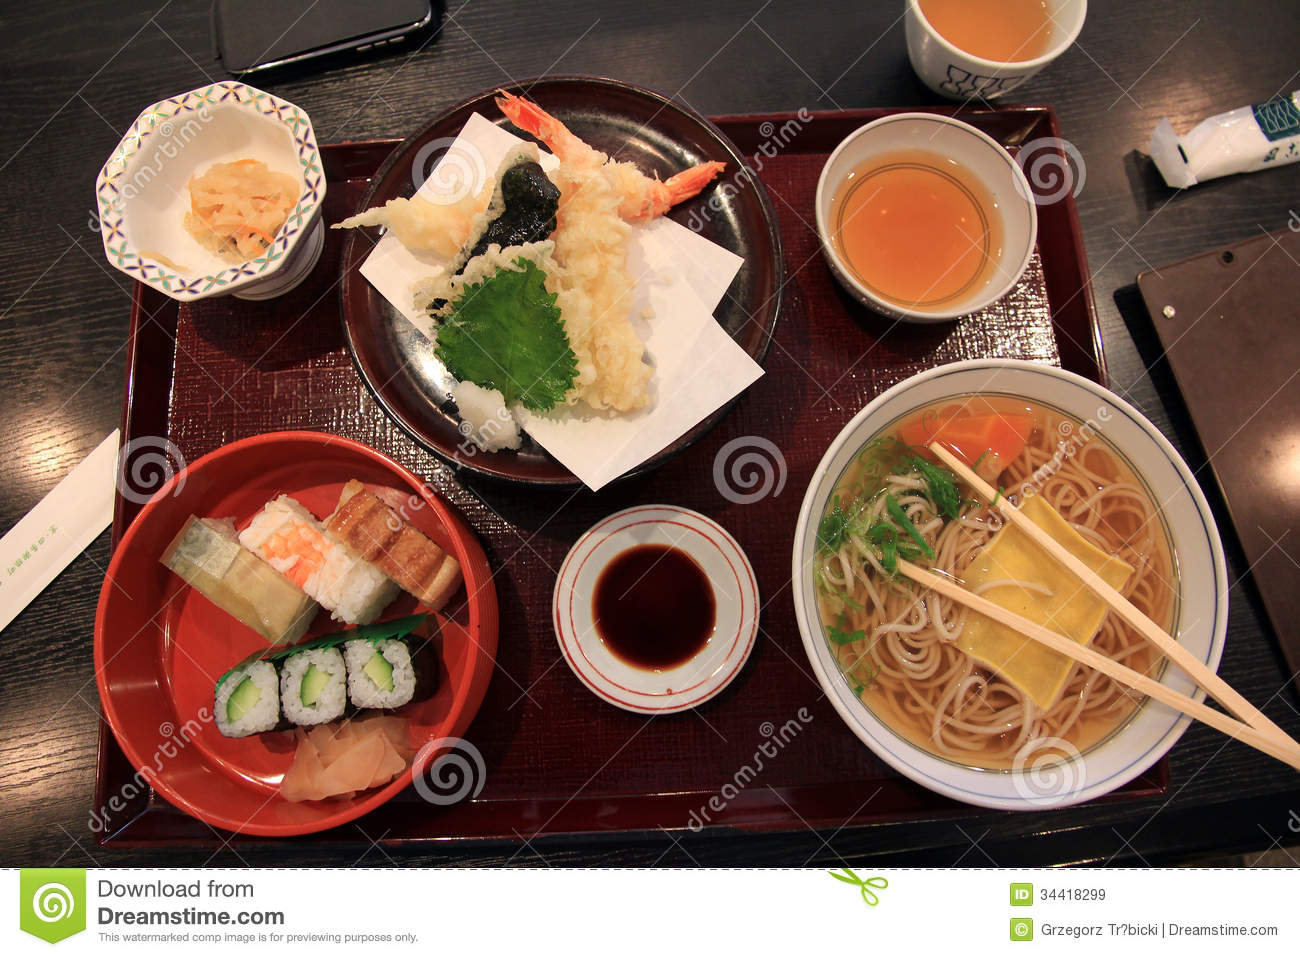 picture of a japanese lunch set including tempura, ramen and sushi.